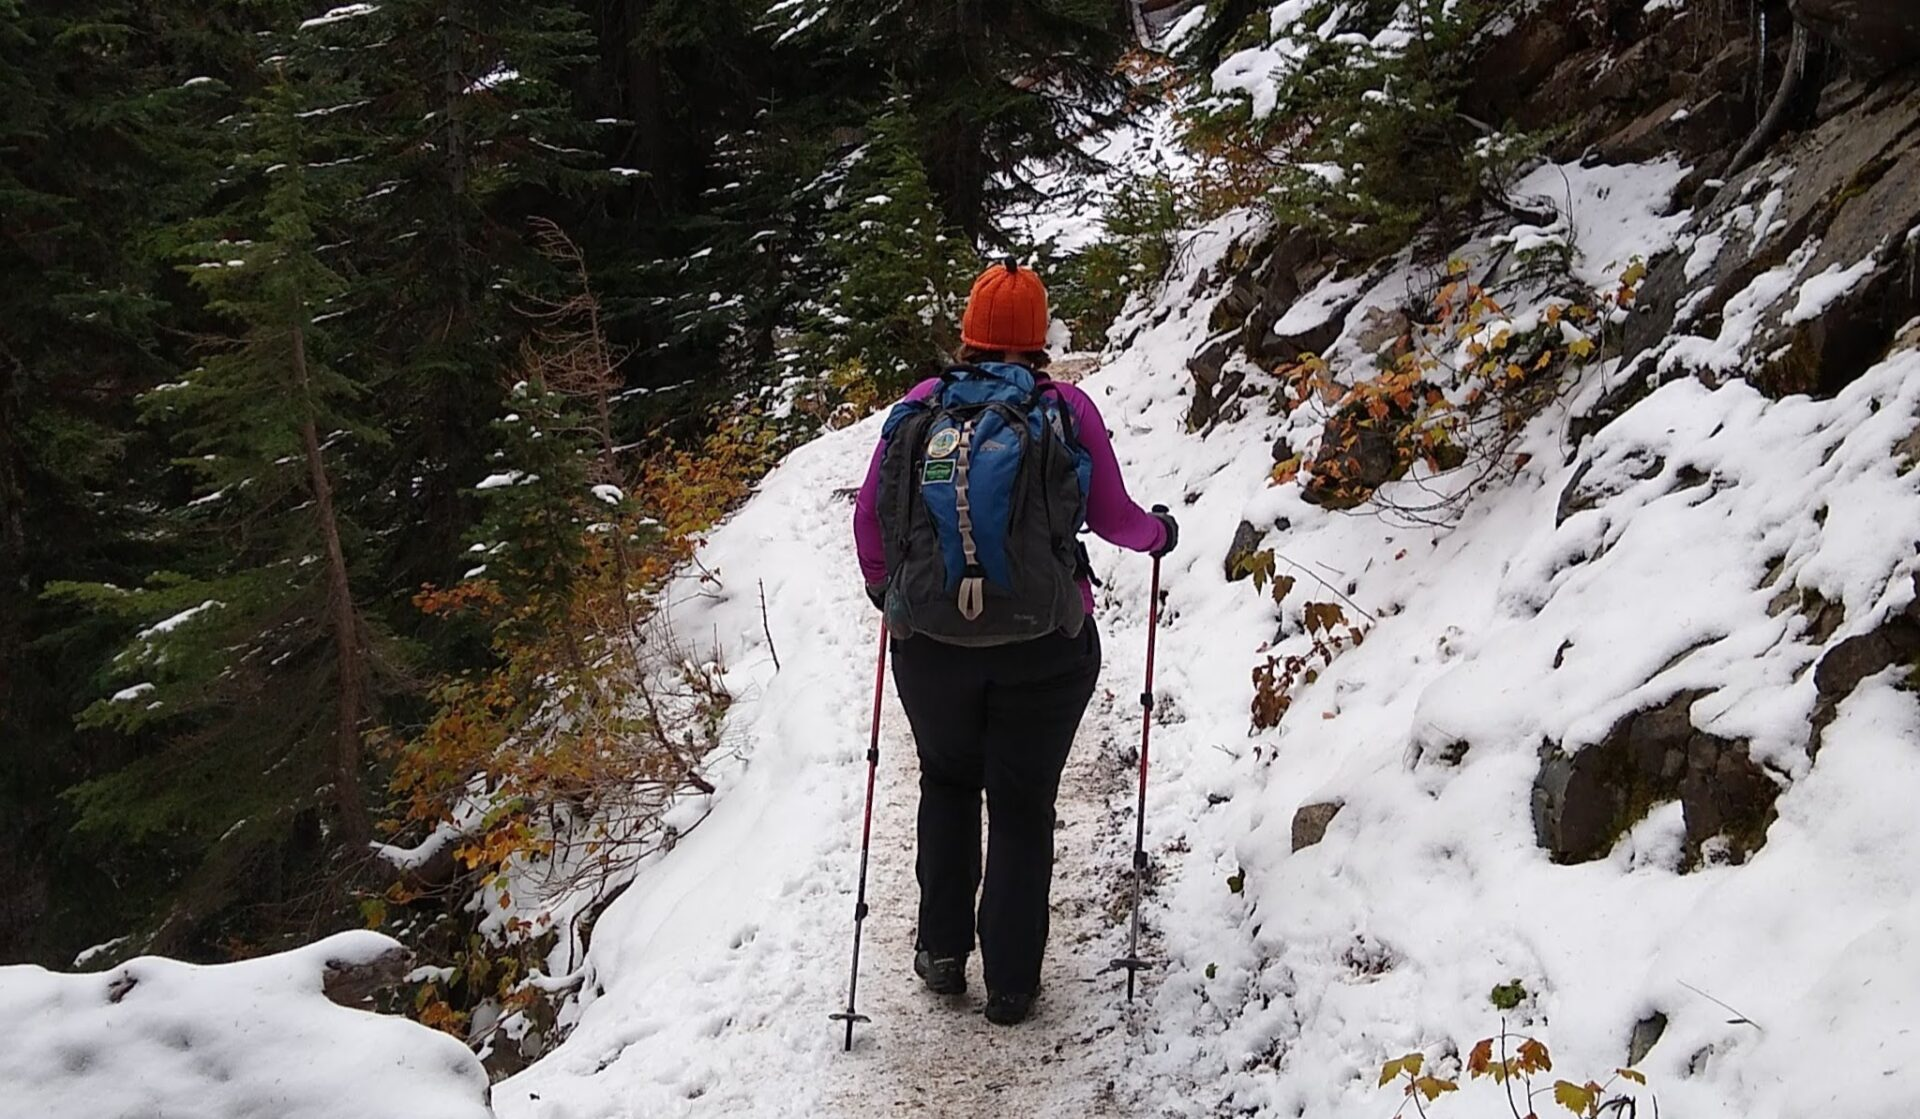 A person on a snowy trail walking away from the camera, wearing an orange hat, purple shirt, black pants and a blue backpack. The person is using trekking poles.